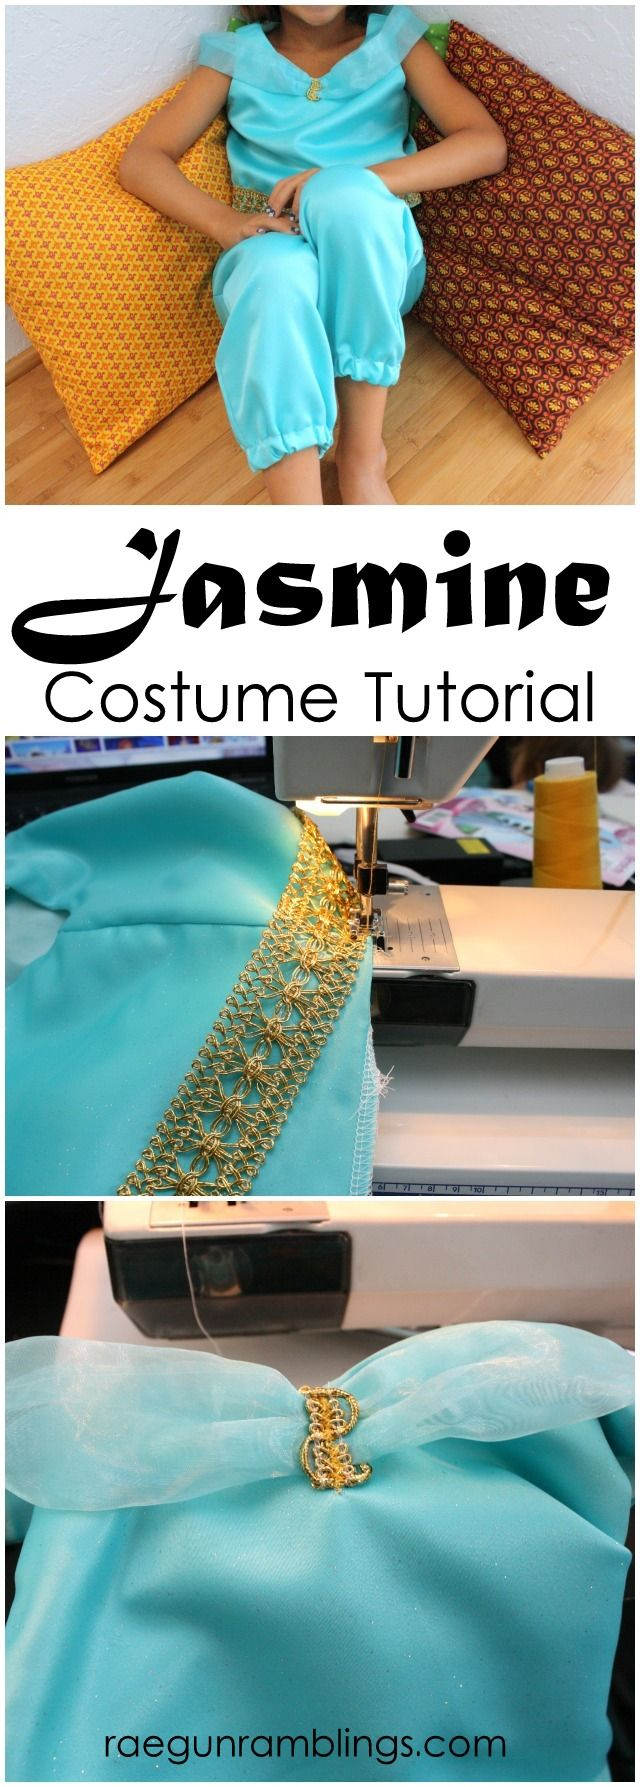 Disney wedding dresses jasmine  DIY Princess Jasmine Costume Tutorial  Genie costume Princess